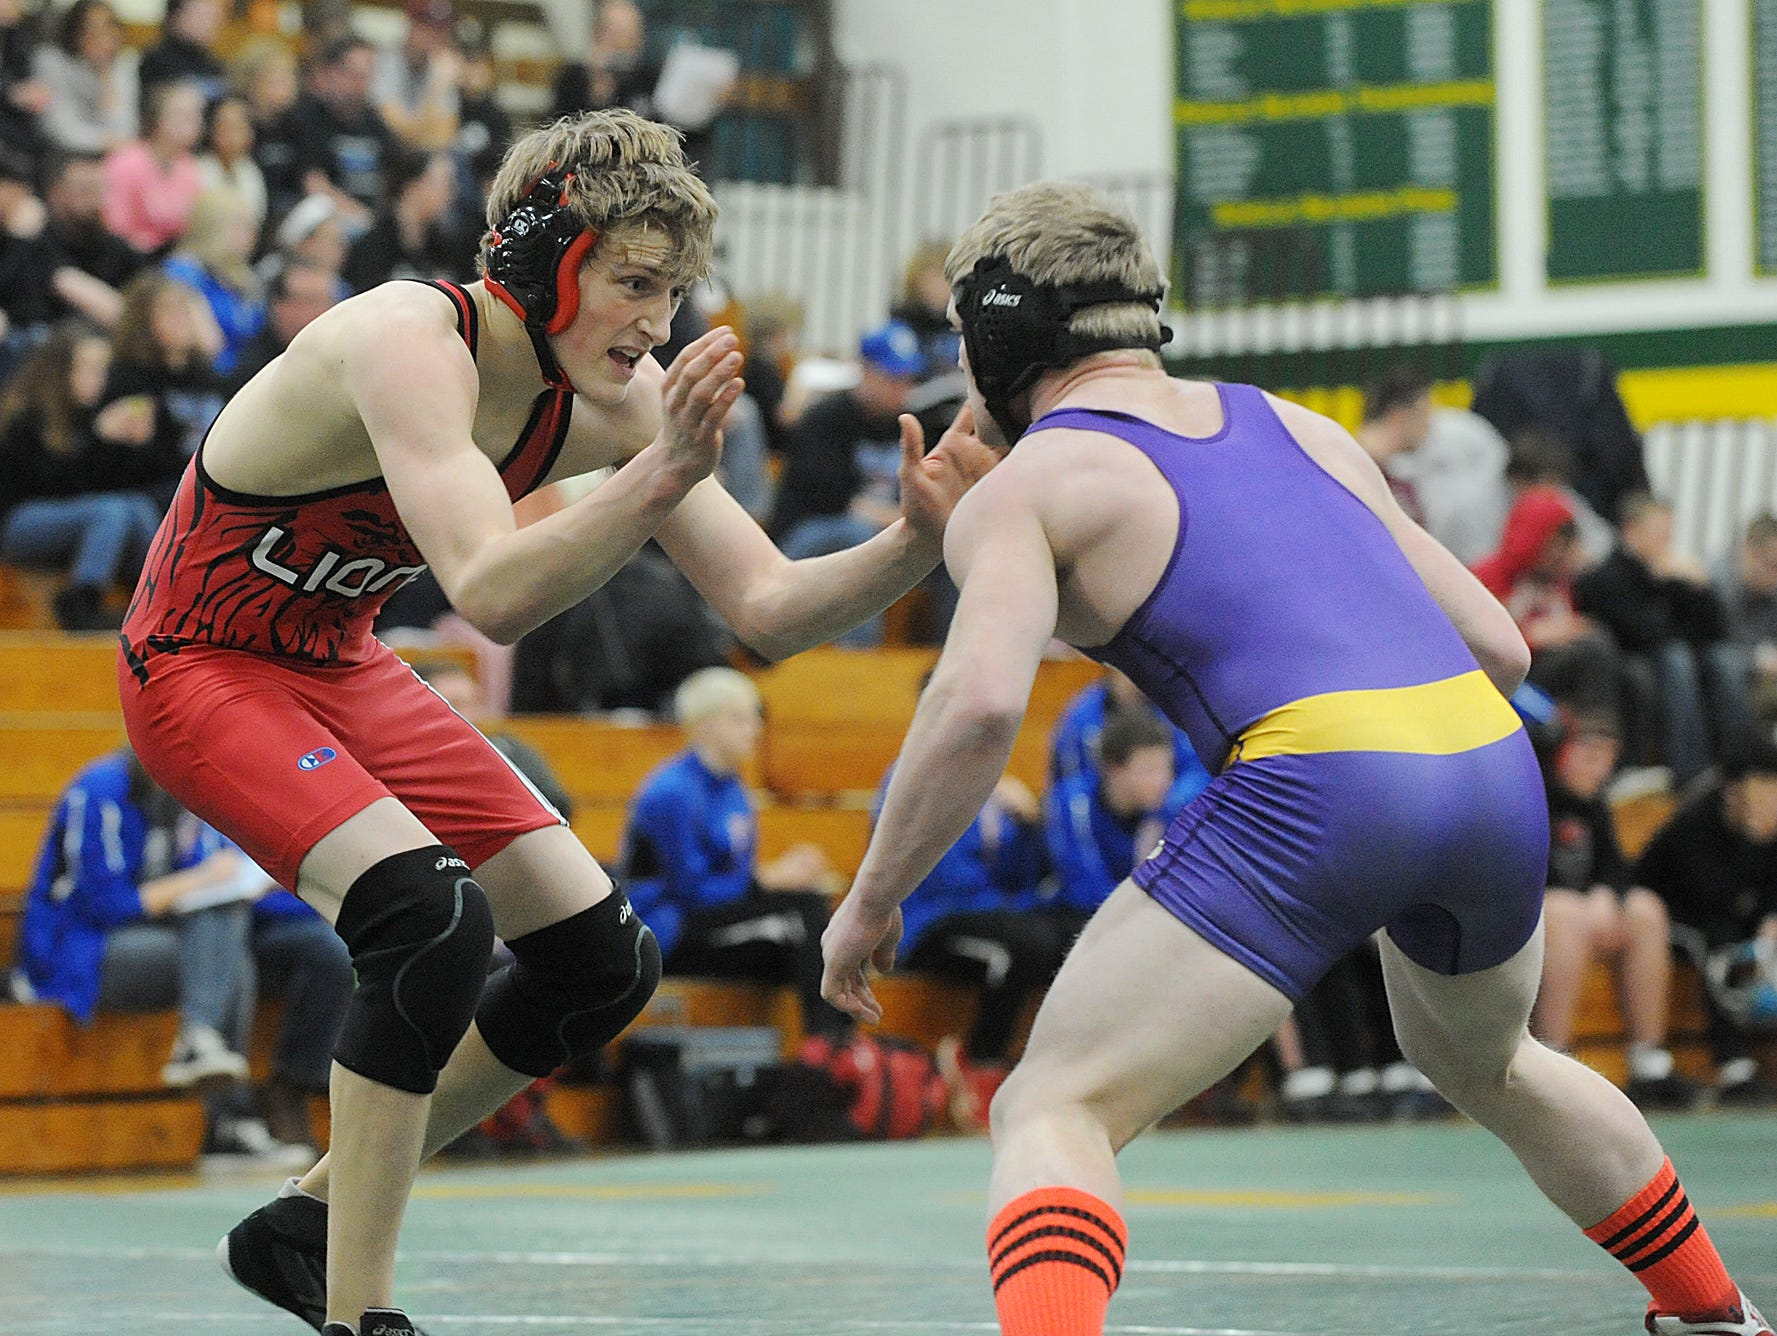 Lomira's Collin Feucht wrestles during a match in 2014.